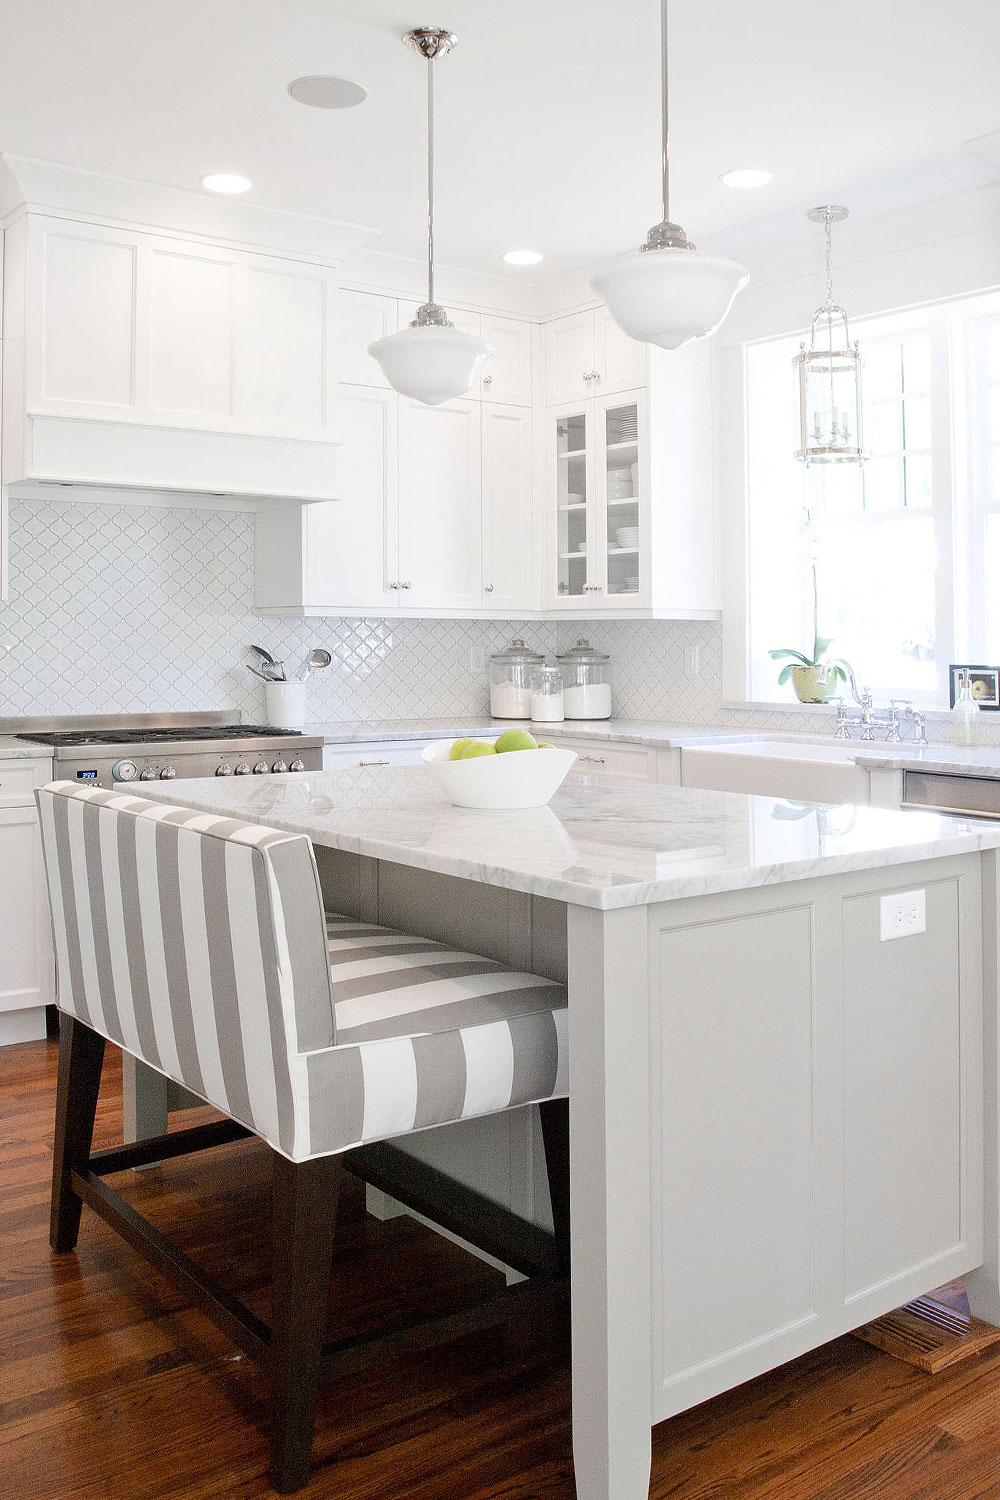 White Kitchen Glossy Elegant Porcalein Kitchens Backsplash Tile